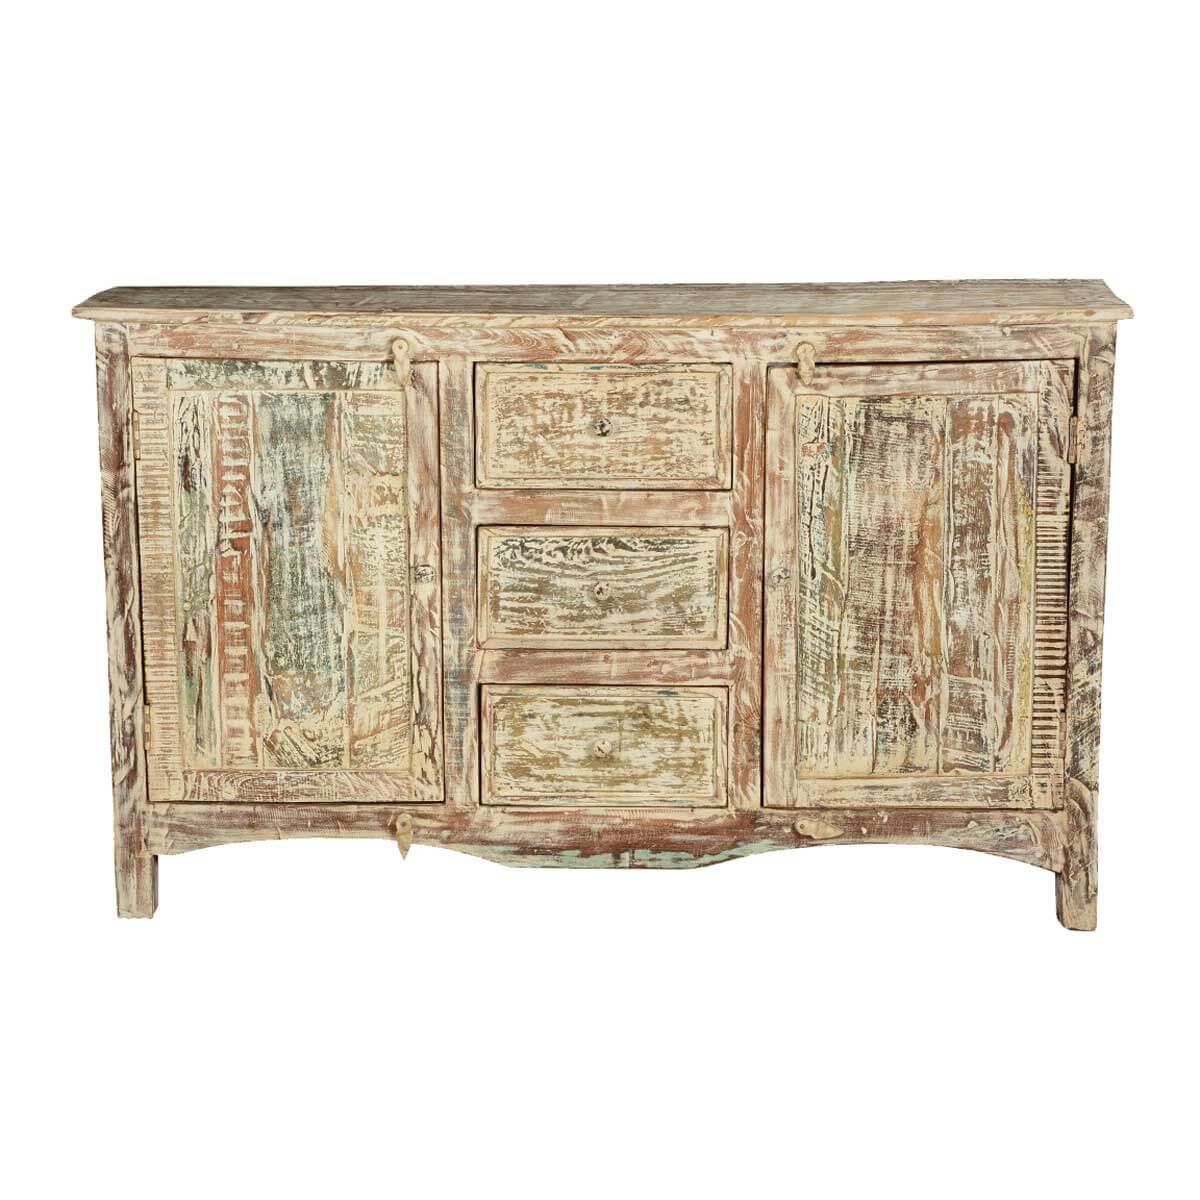 Marvelous photograph of  Breeze Antique White Mango Wood Standing Sideboard Buffet Cabinet with #A17E2A color and 1200x1200 pixels